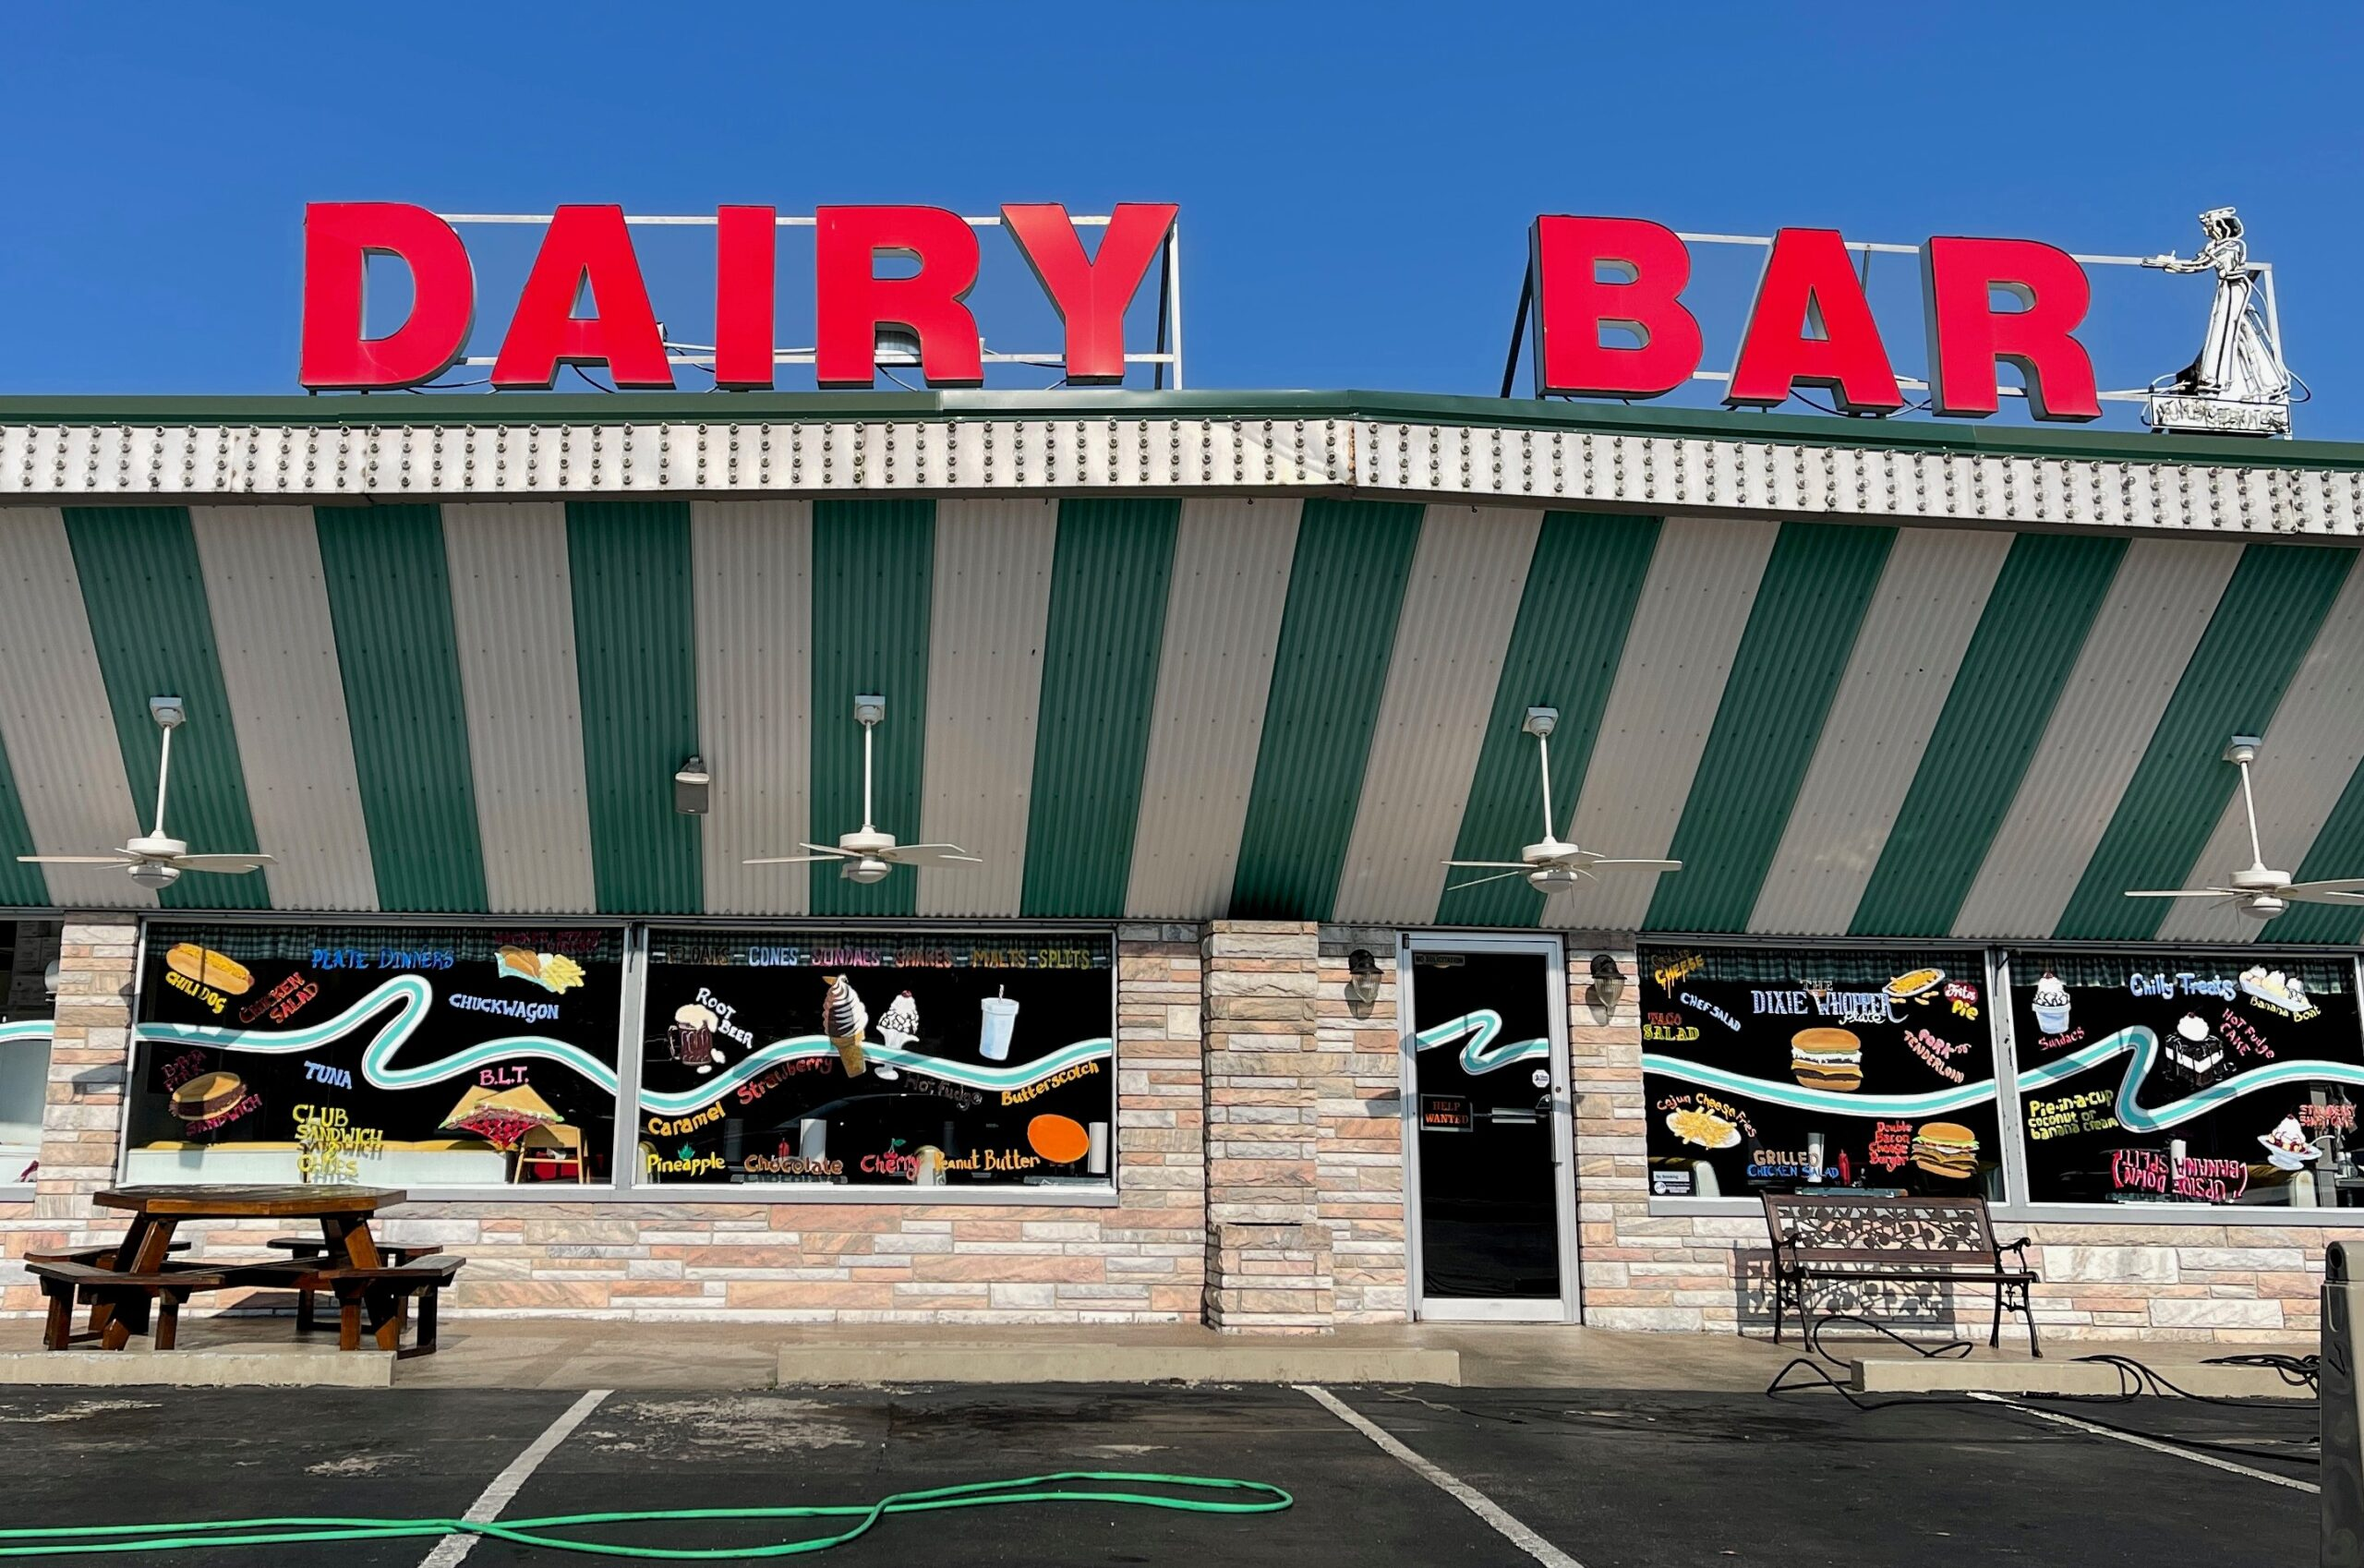 Small towns in KY - Whitley City Dairy Bar